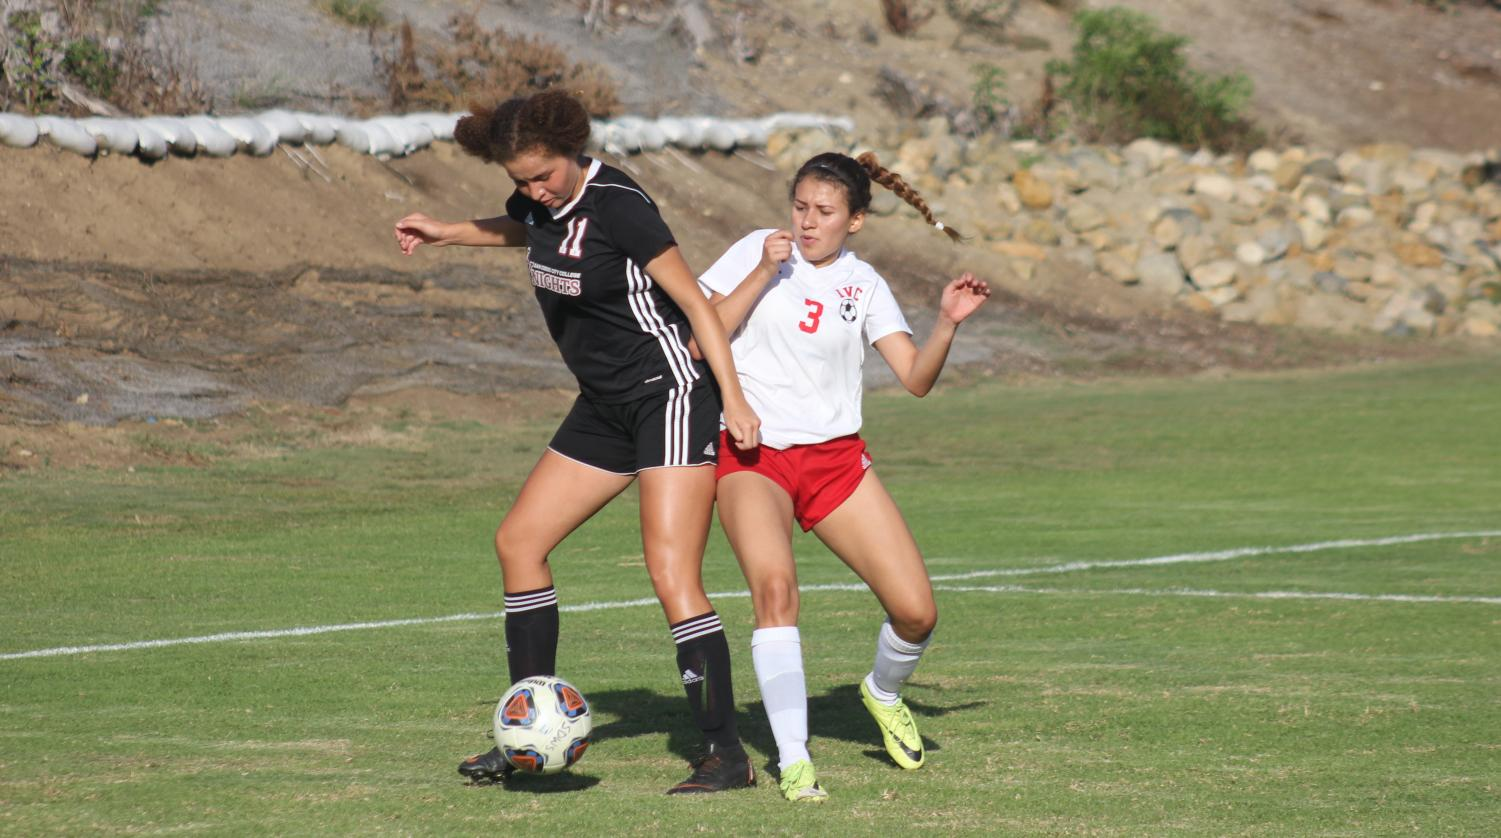 Marisol Guerrero (11) assisted on both of the Knights' goals. Photo by Sonny Garibay